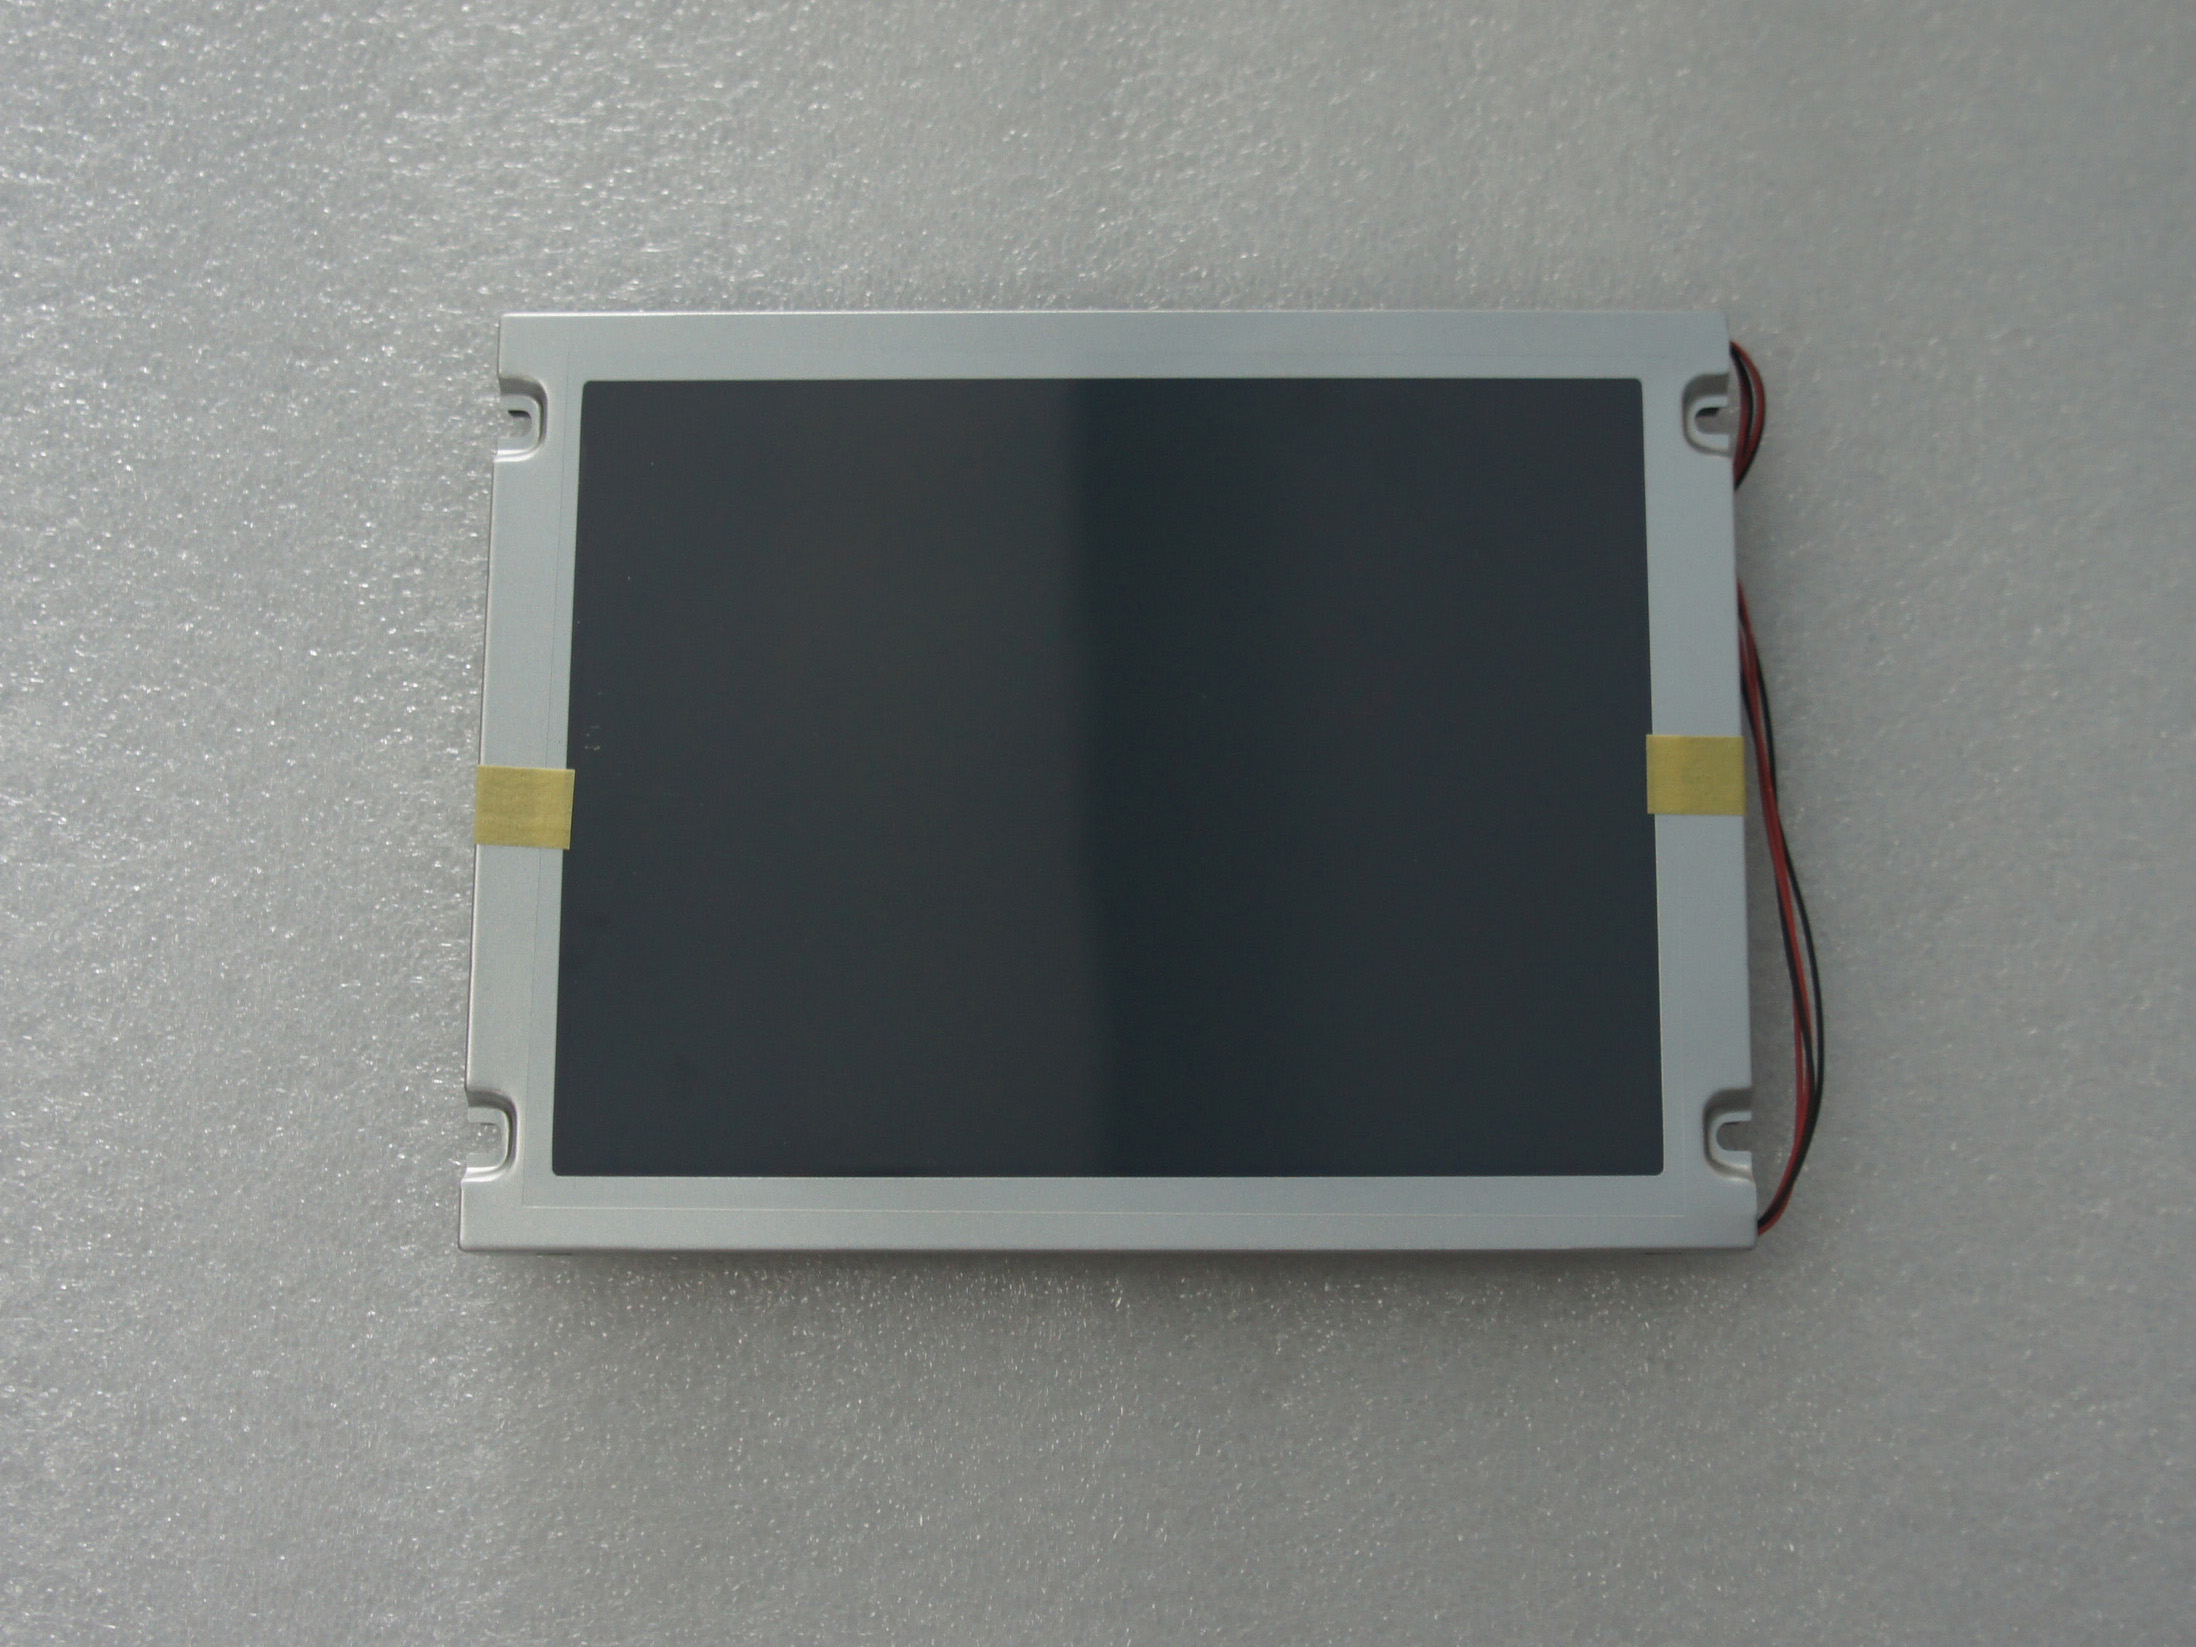 6.5inch 640*480 TFT LCD Display T-51750GD065J-LW-BGN